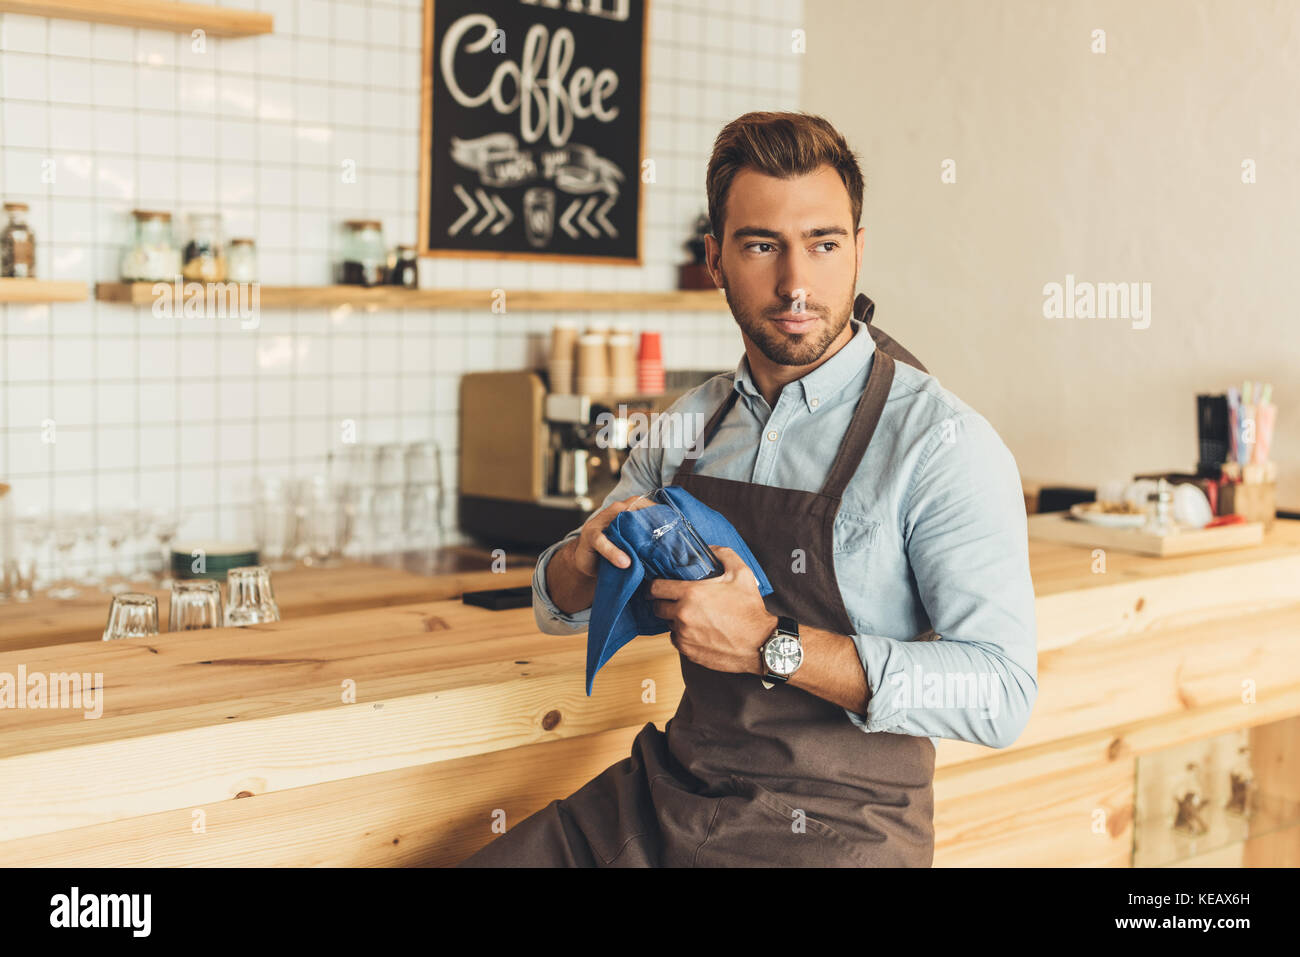 barista cleaning glassware - Stock Image